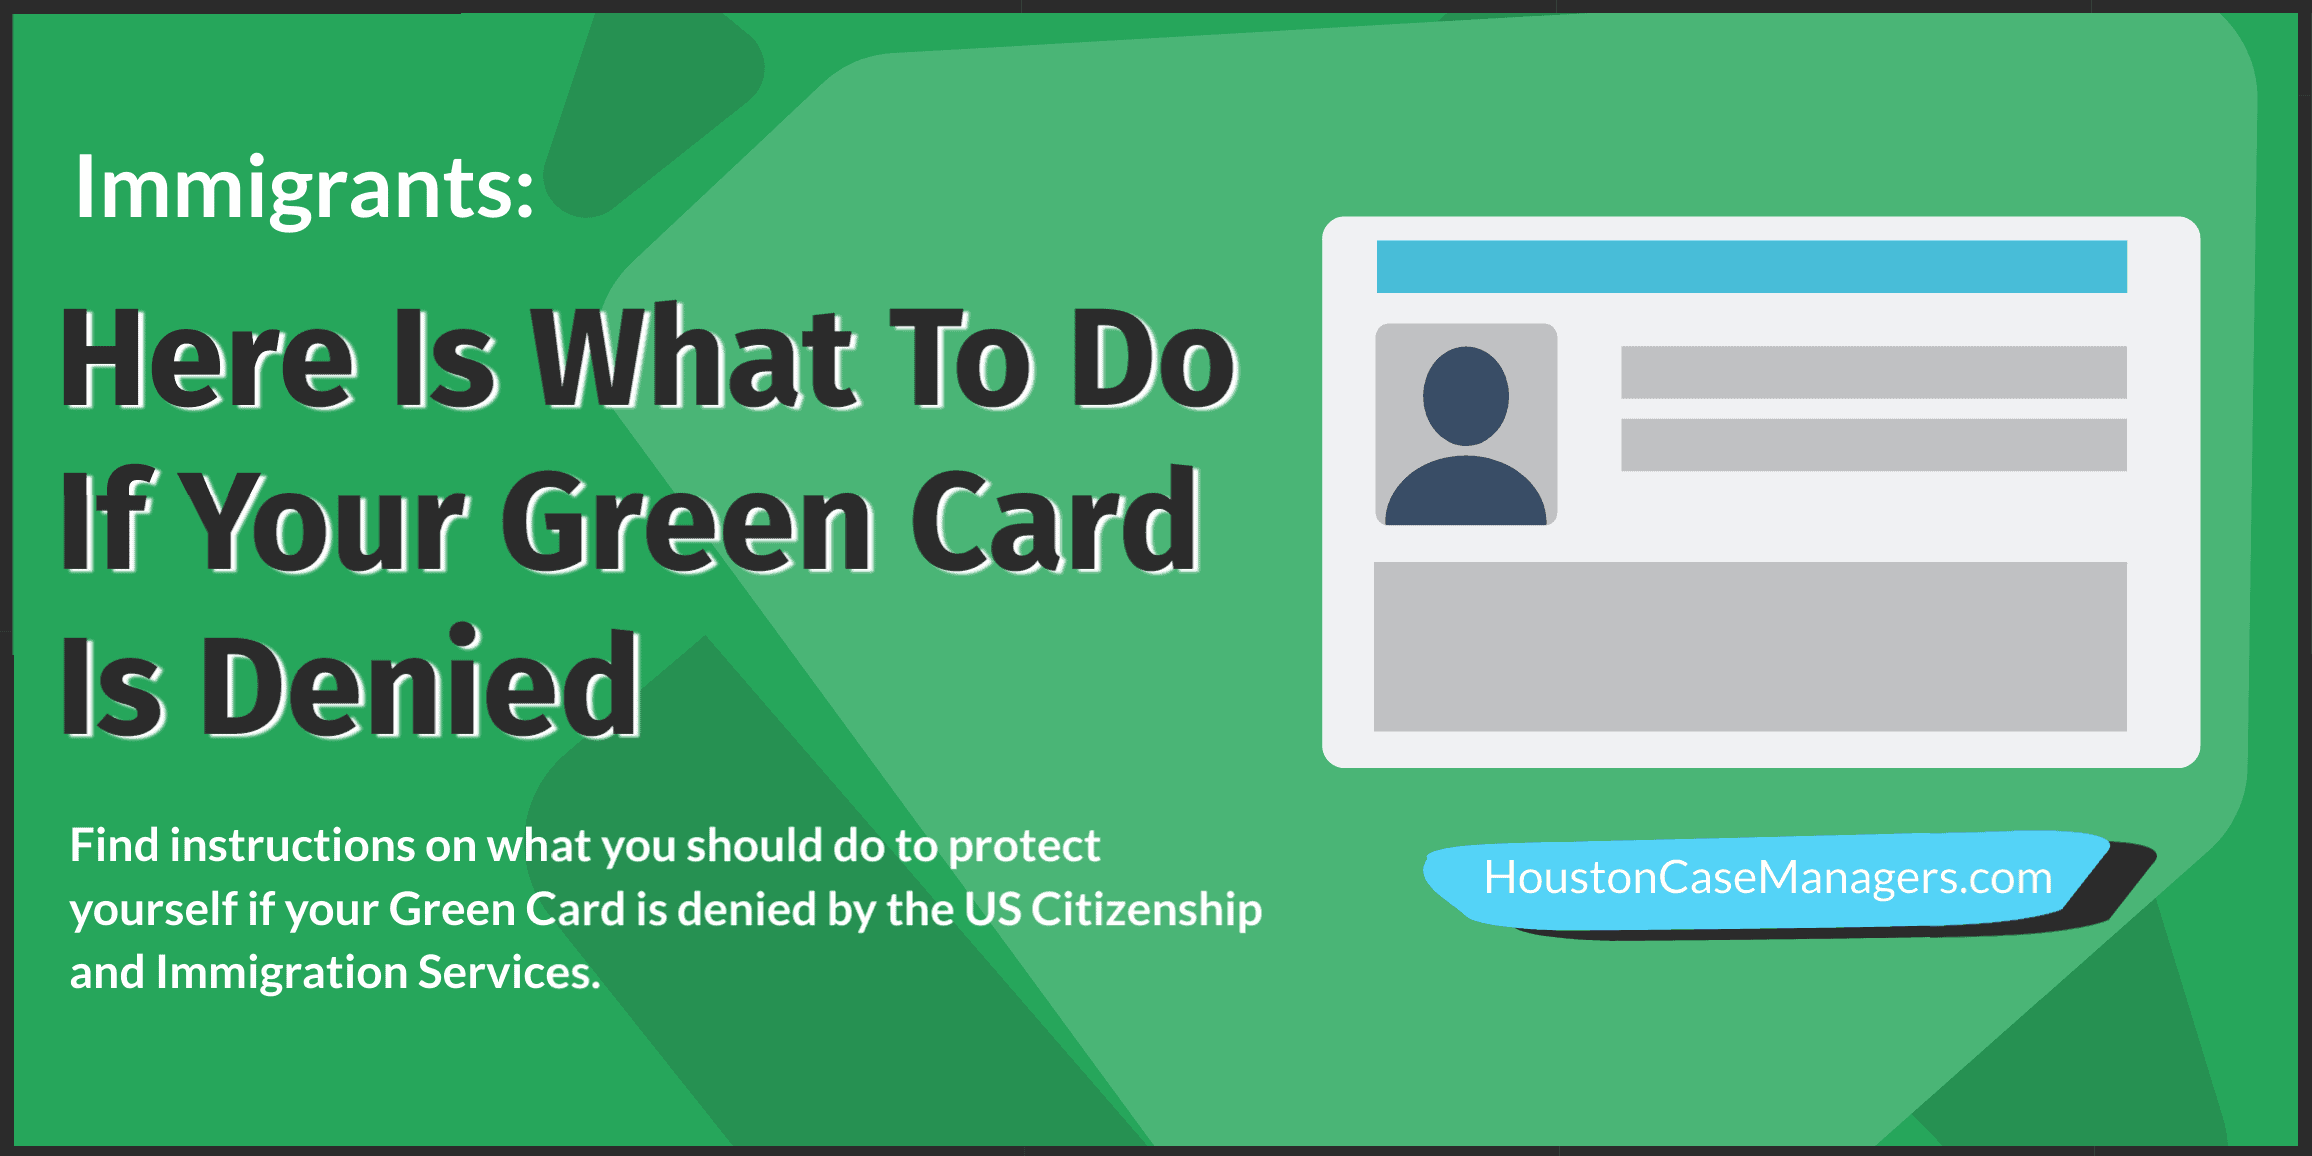 Immigrants: What To Do If Your Green Card Is Denied